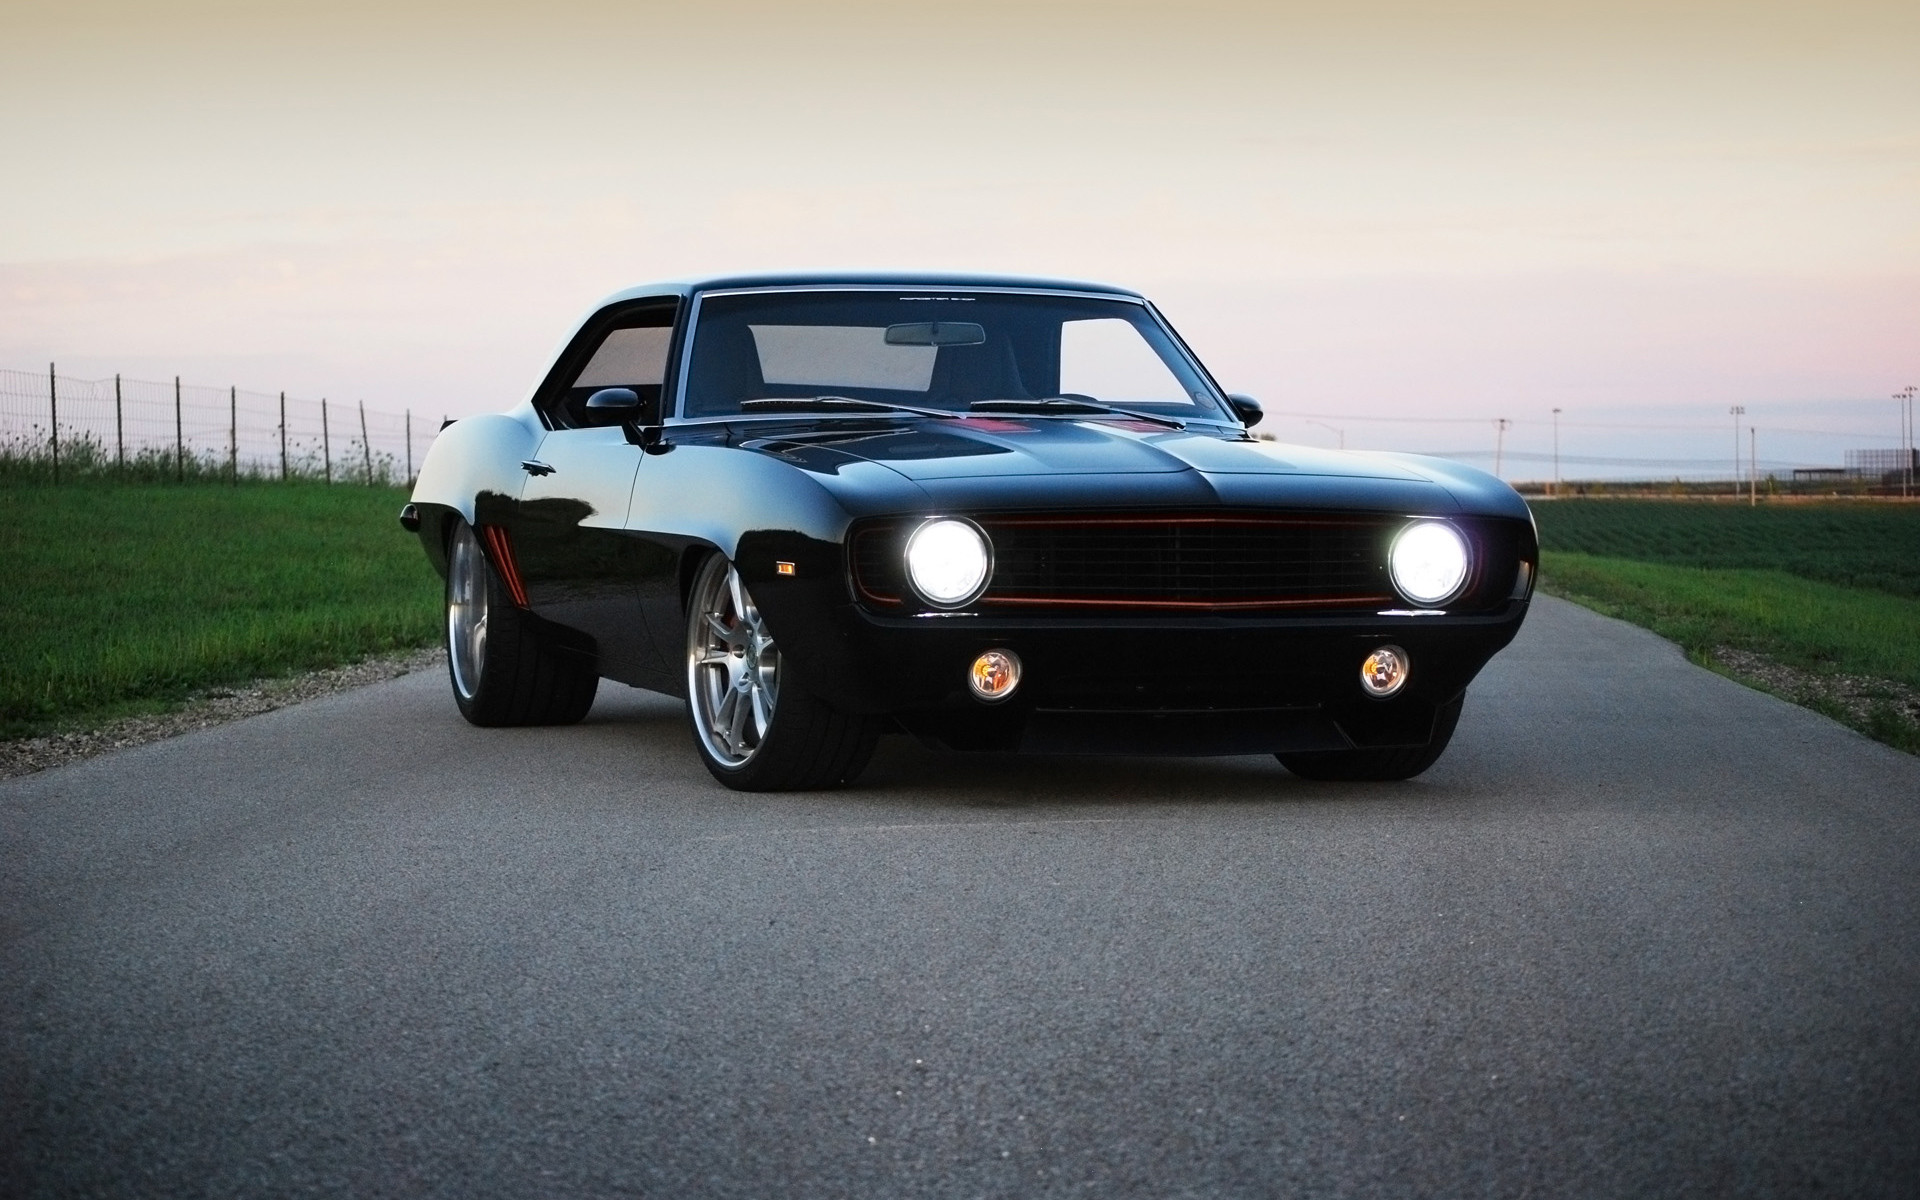 1969 Chevrolet Camaro SS Wallpaper | Wide Wallpaper Collections